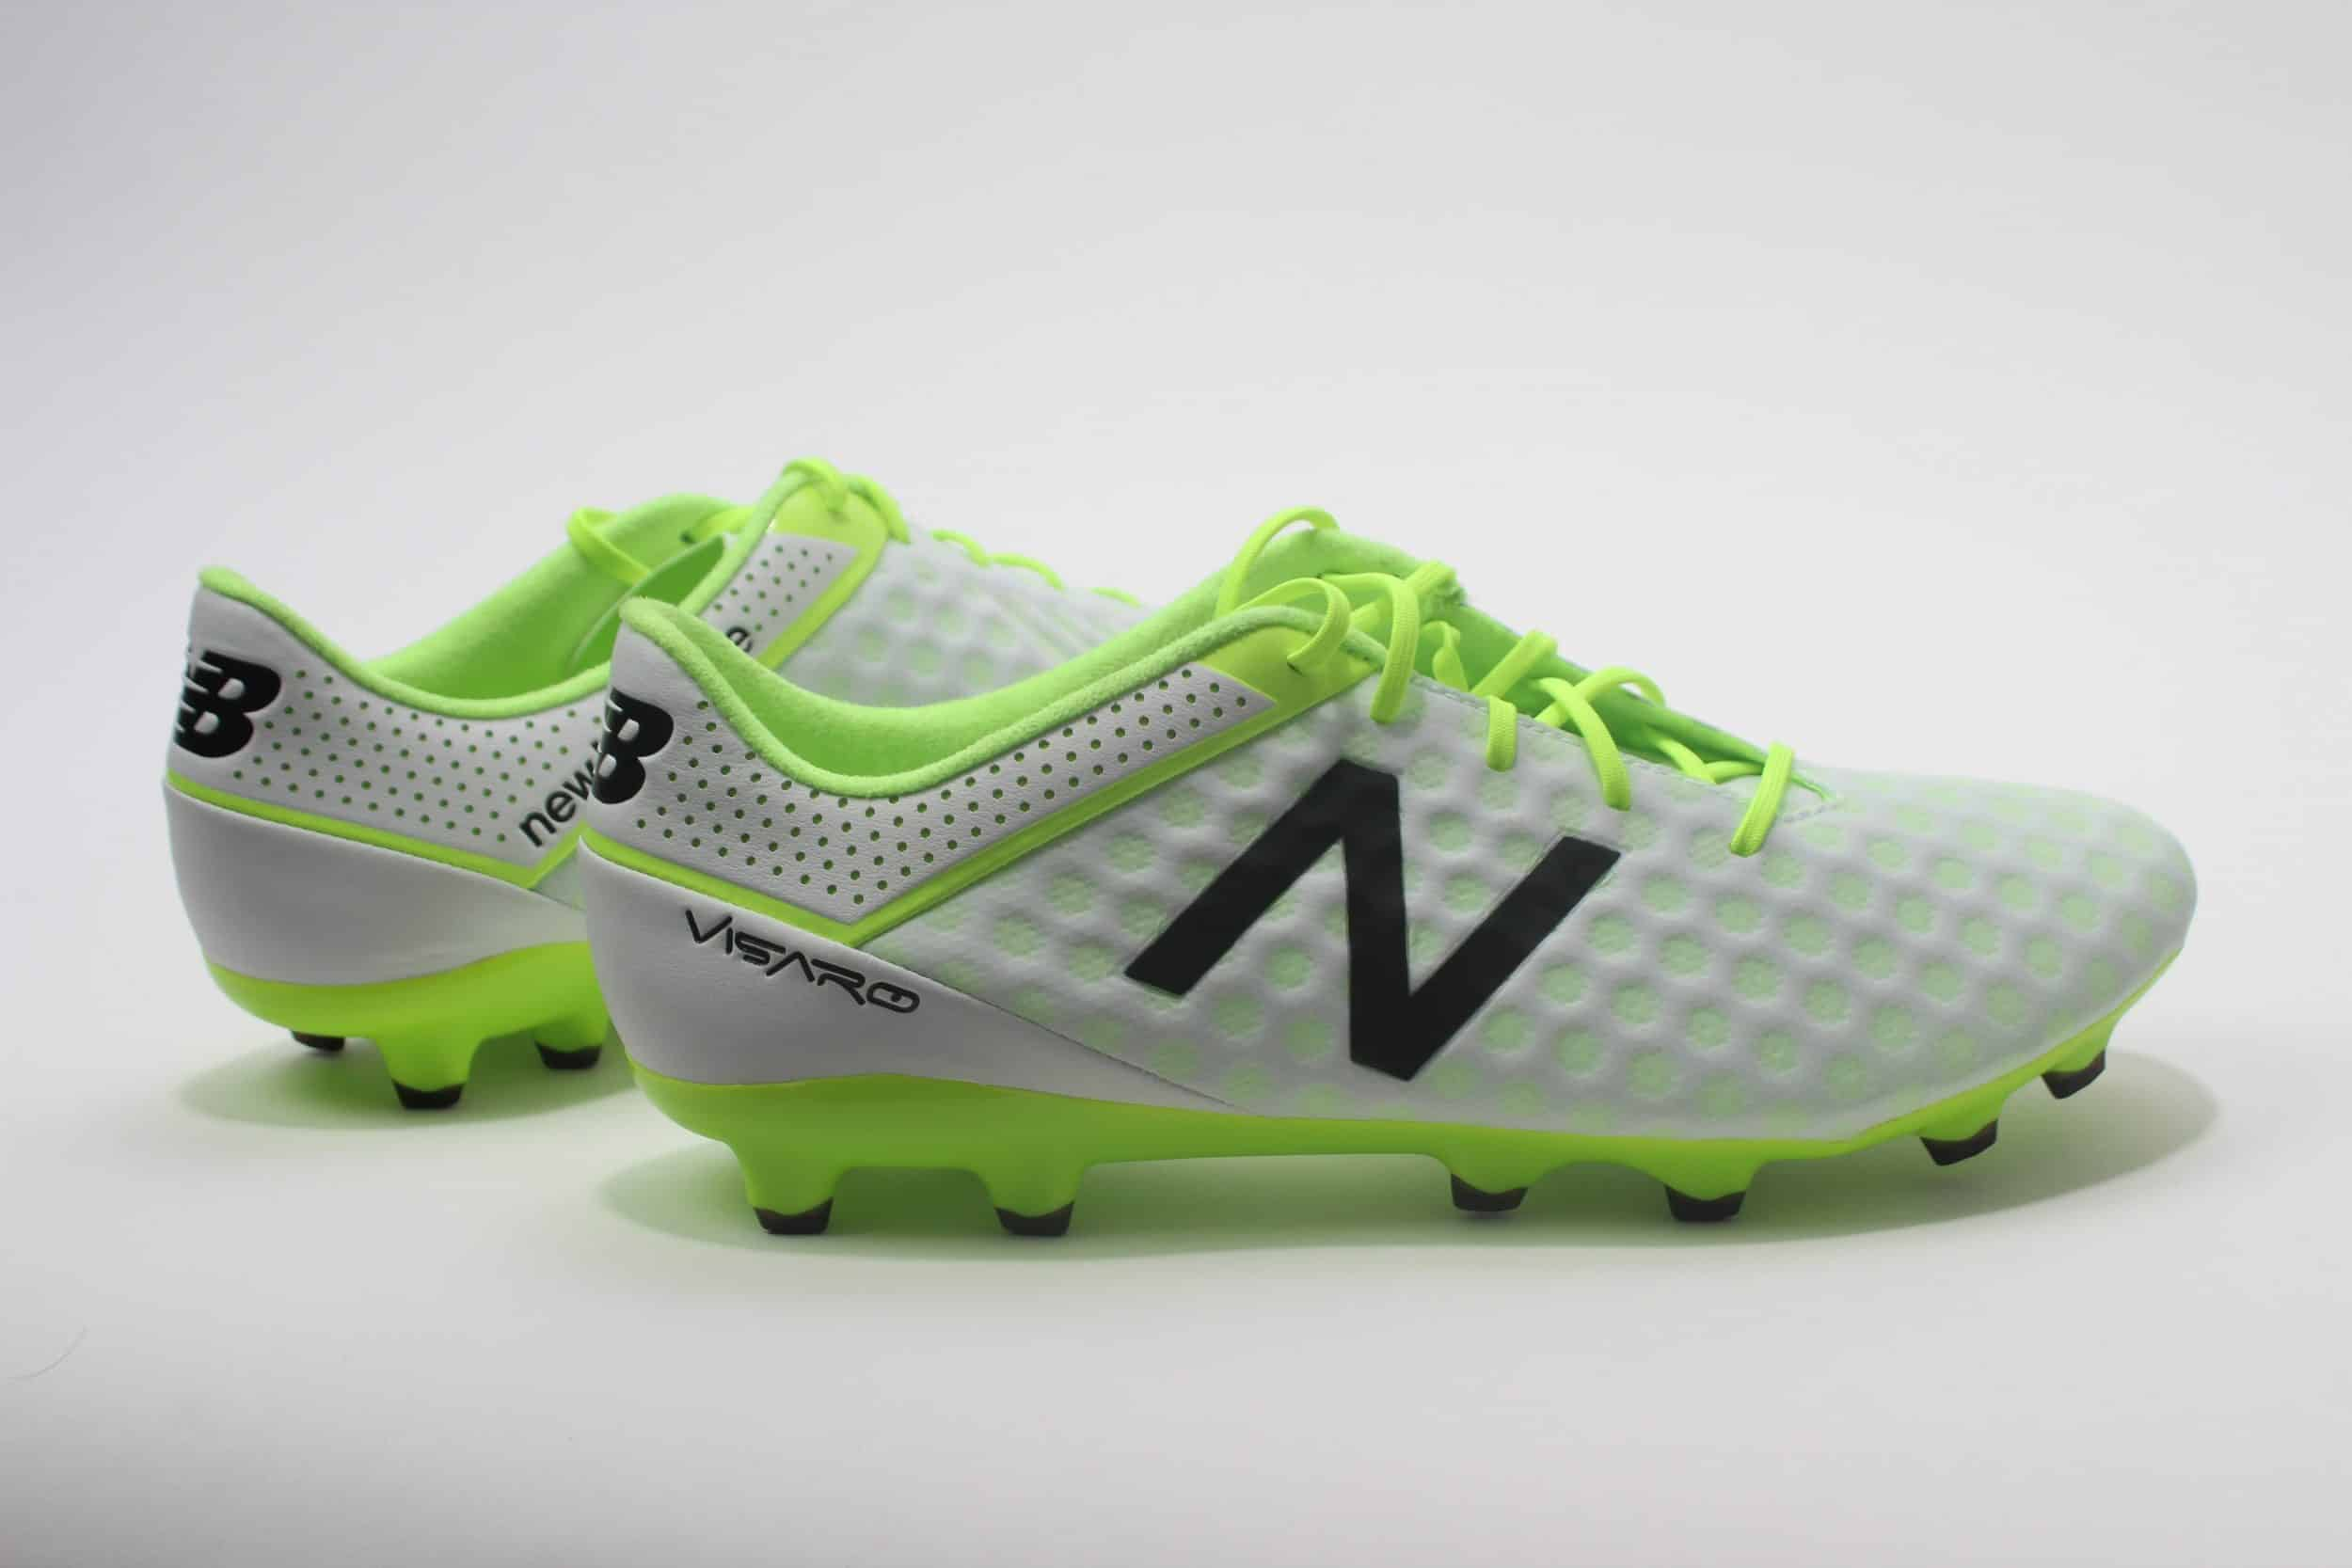 test-chaussure-football-new-balance-visaro-2016-8-min